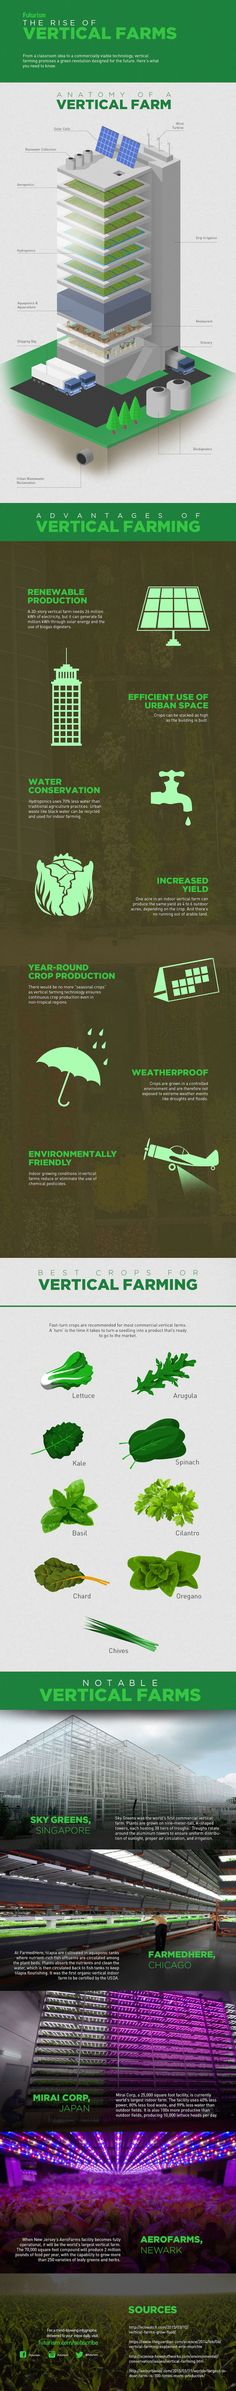 WEEK 4 - Vertical farming can provide food and recycle water in a self sustainable urban environment. It is a growing issue due to overpopulation.